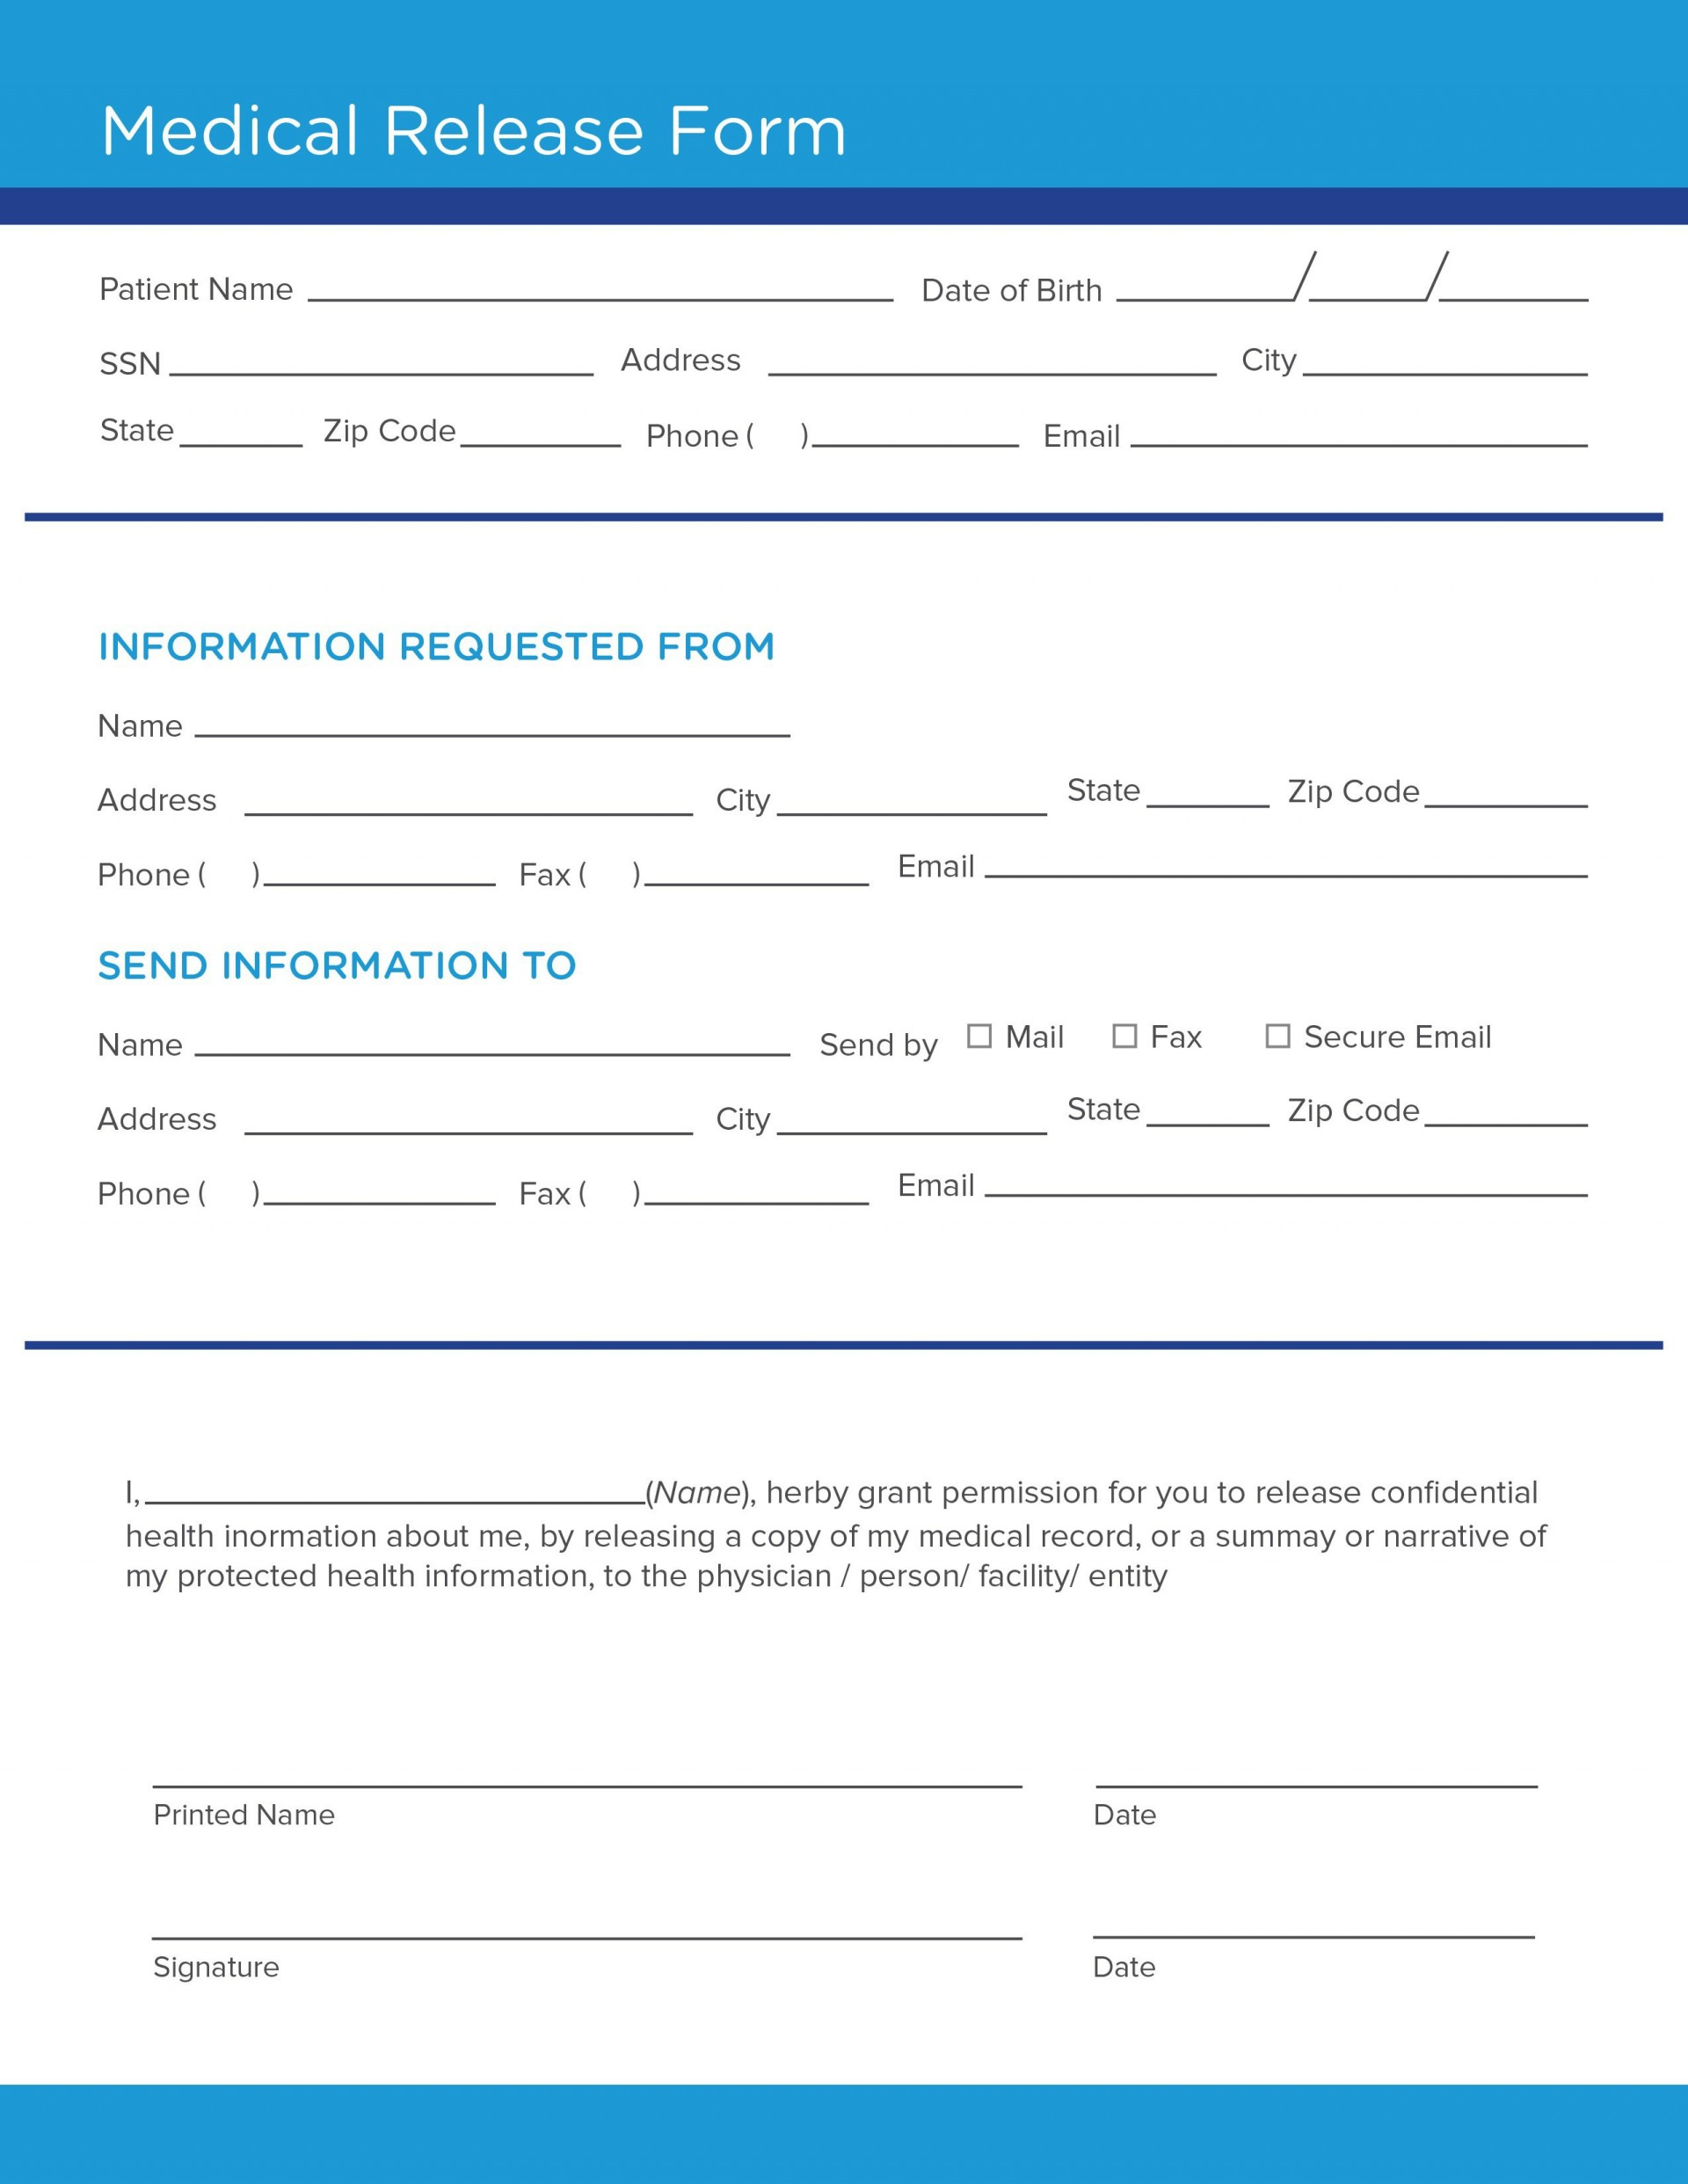 008 Surprising Medical Release Form Template High Def  Free Consent Uk For Minor1920